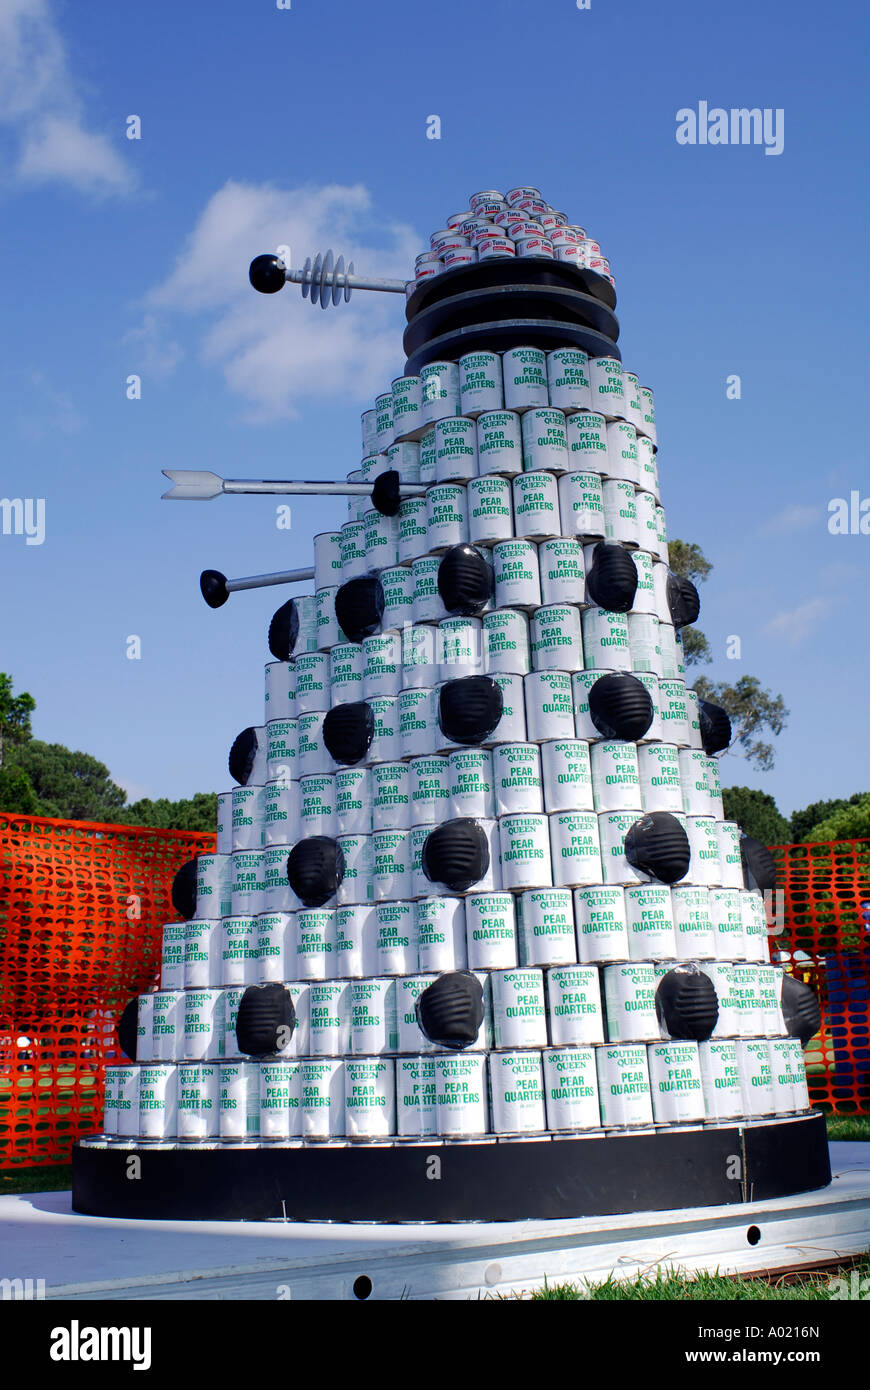 Dalek constructed from cans of fruit - Stock Image